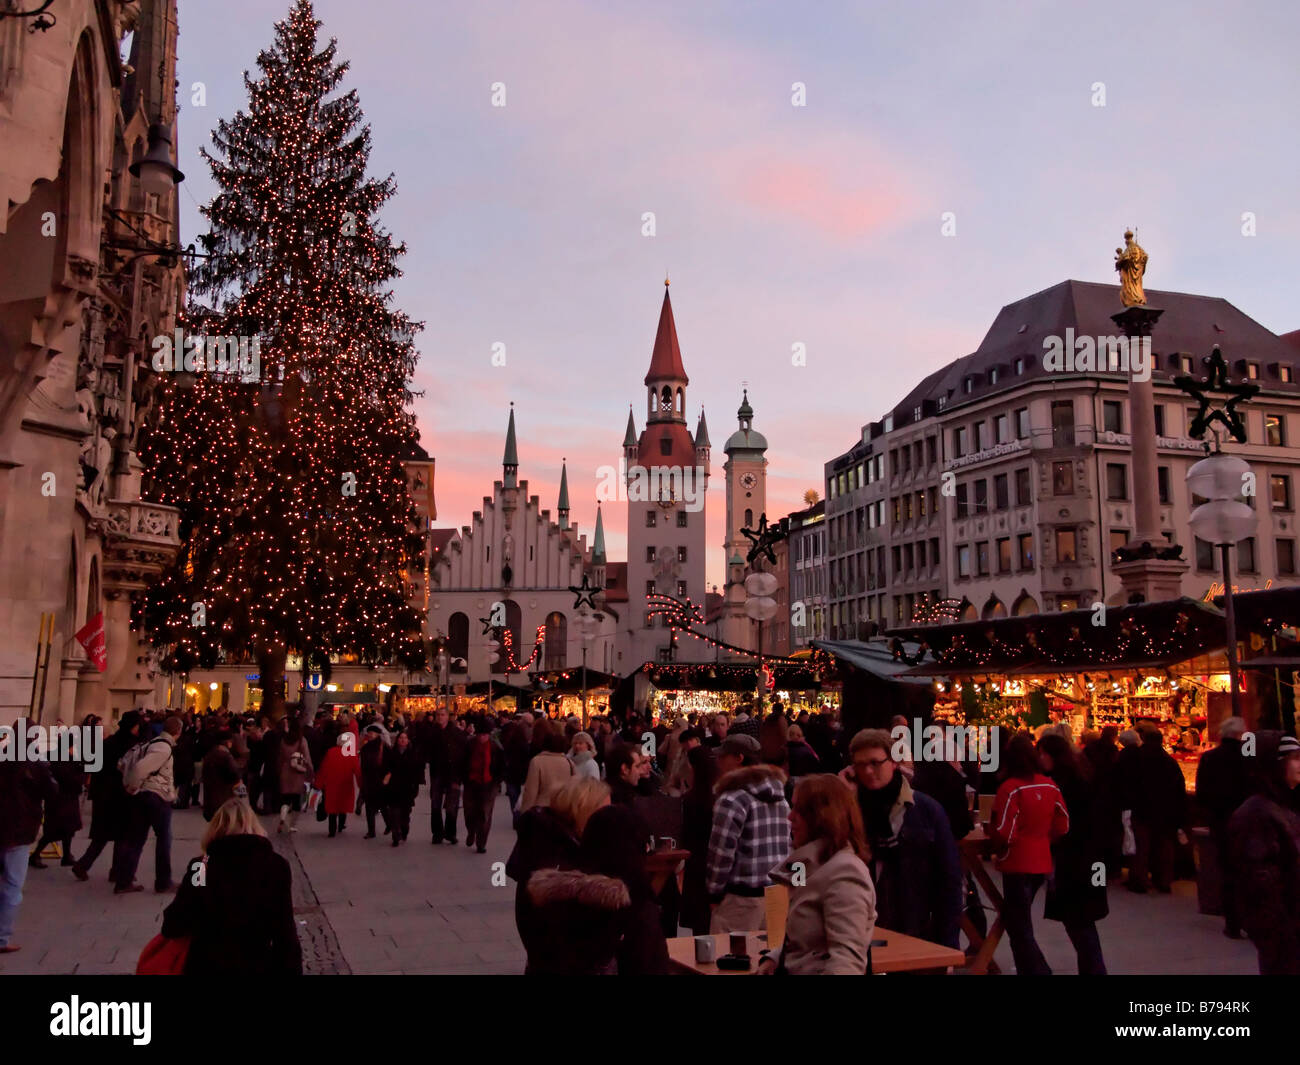 Christmas Markets Marienplatz Munich Bavaria Germany, Europe - Stock Image